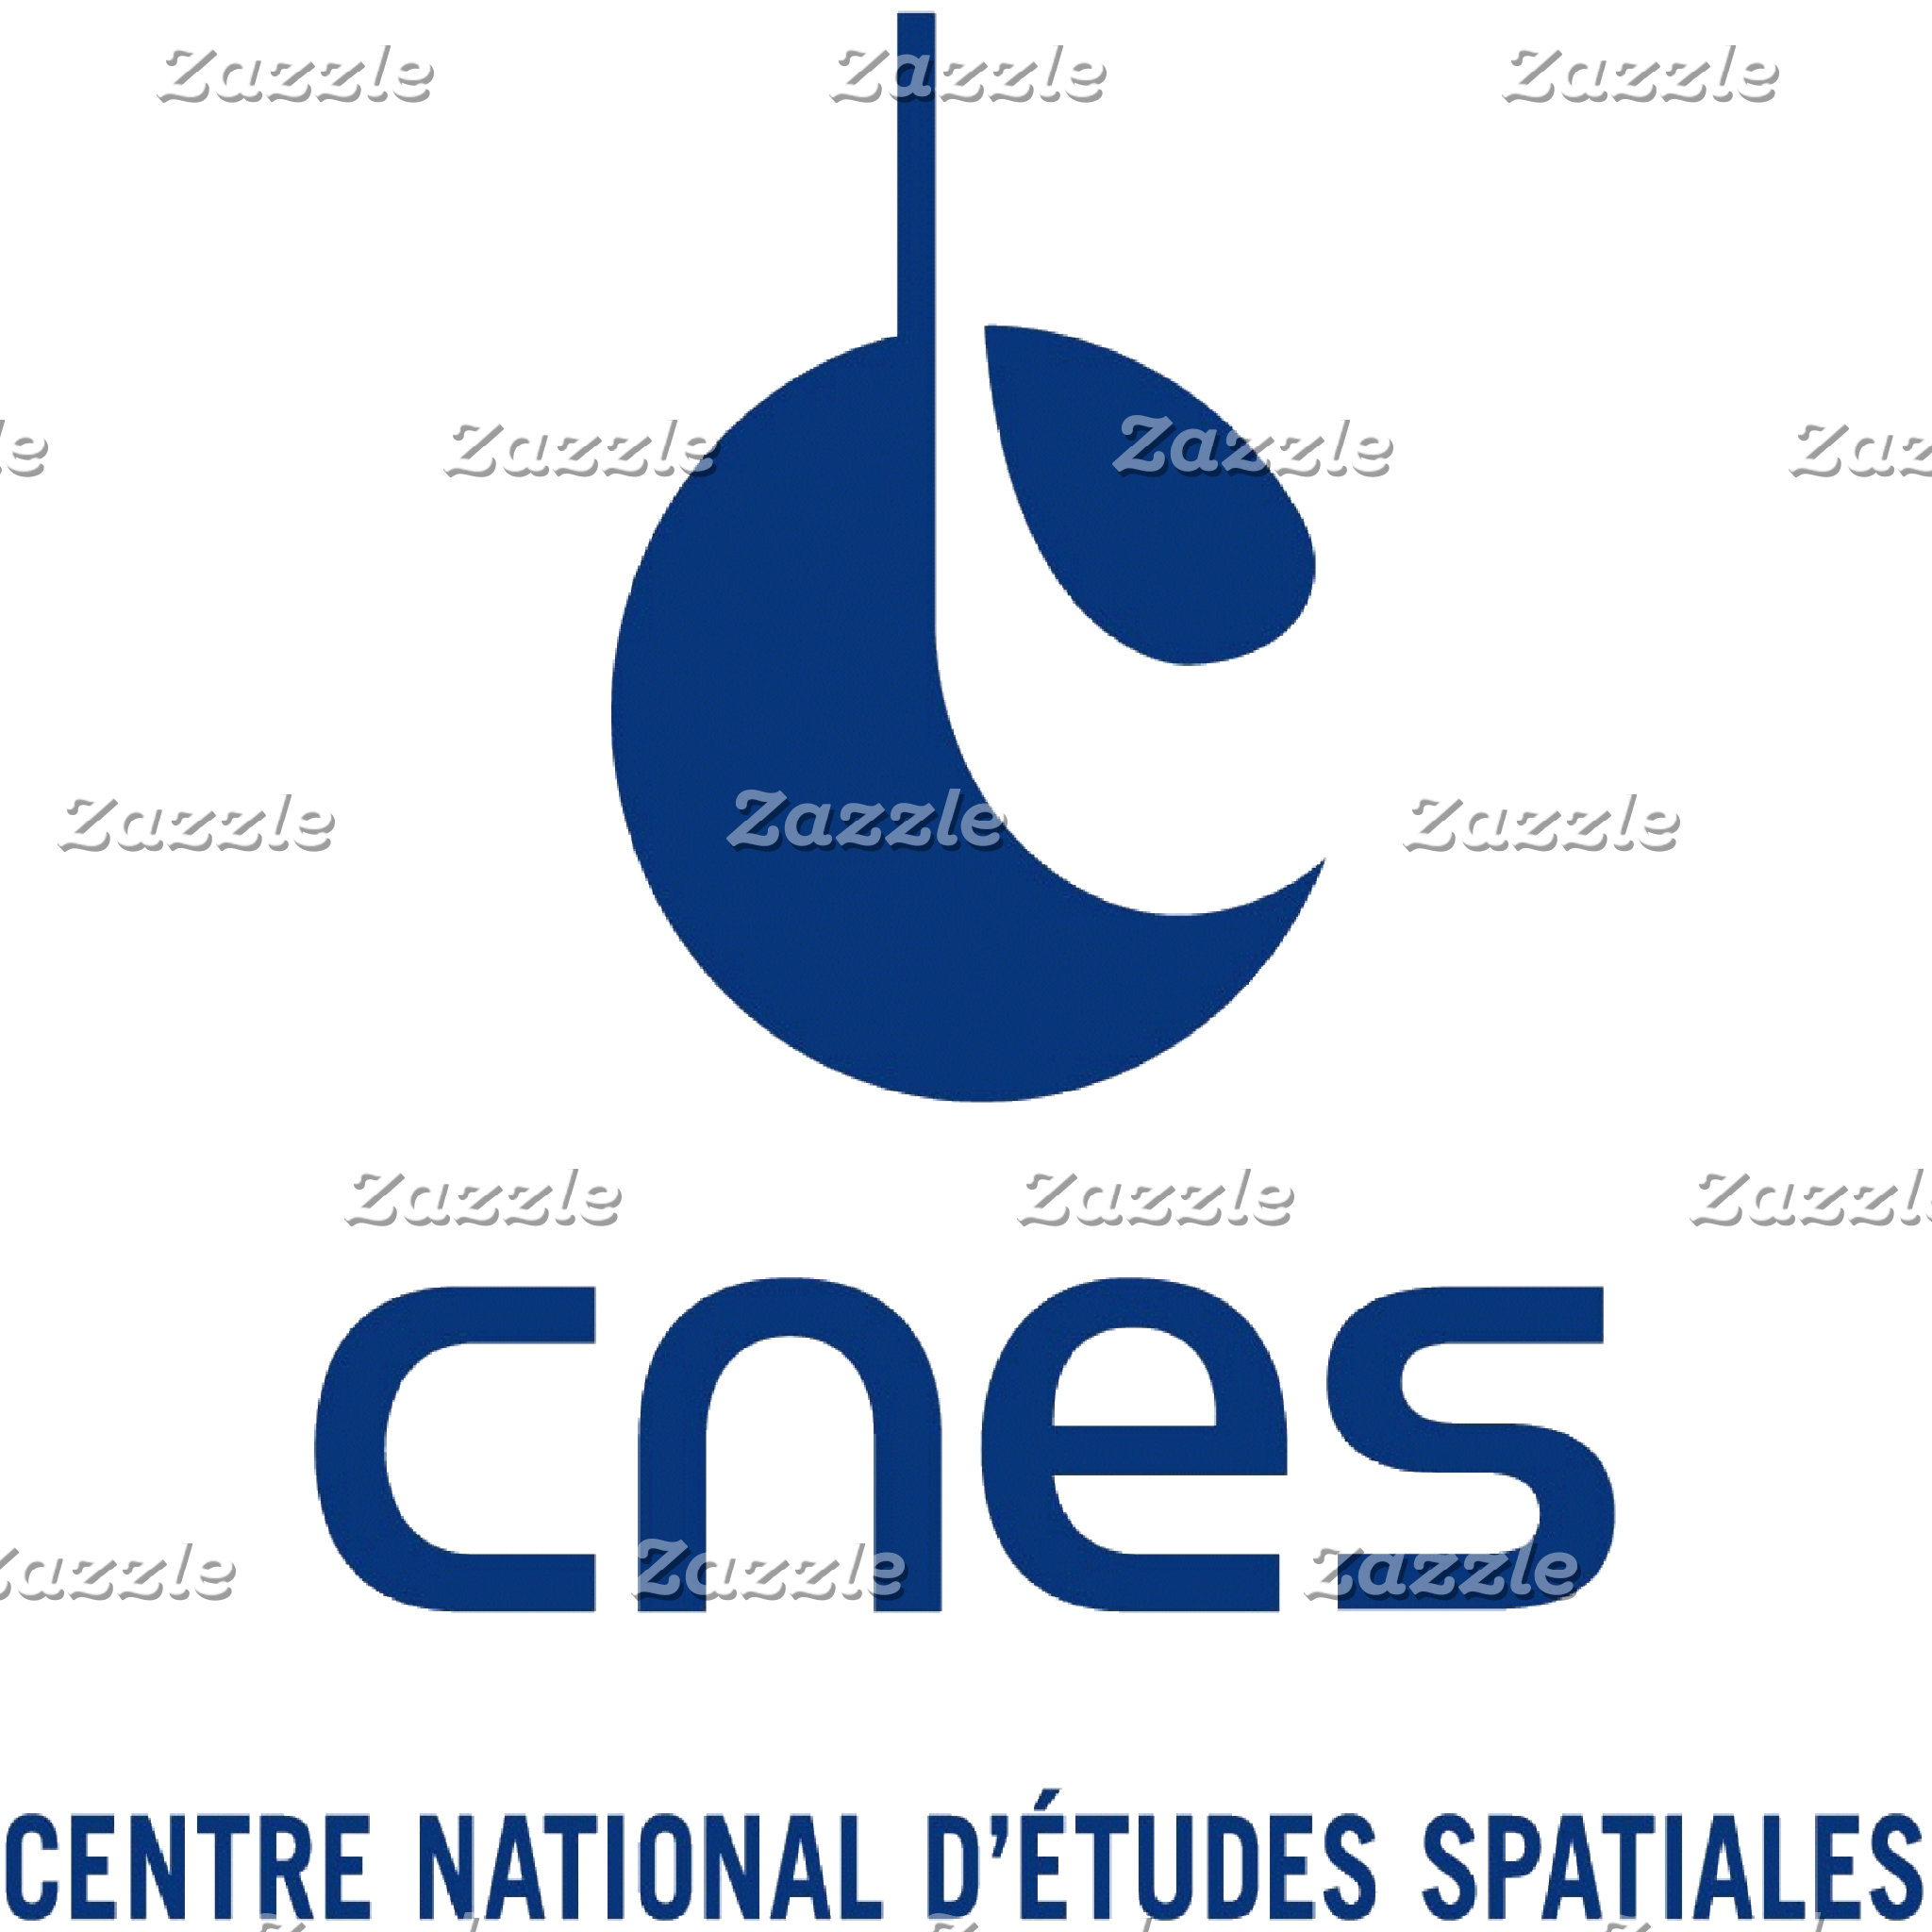 France Space - National Center of Space Research